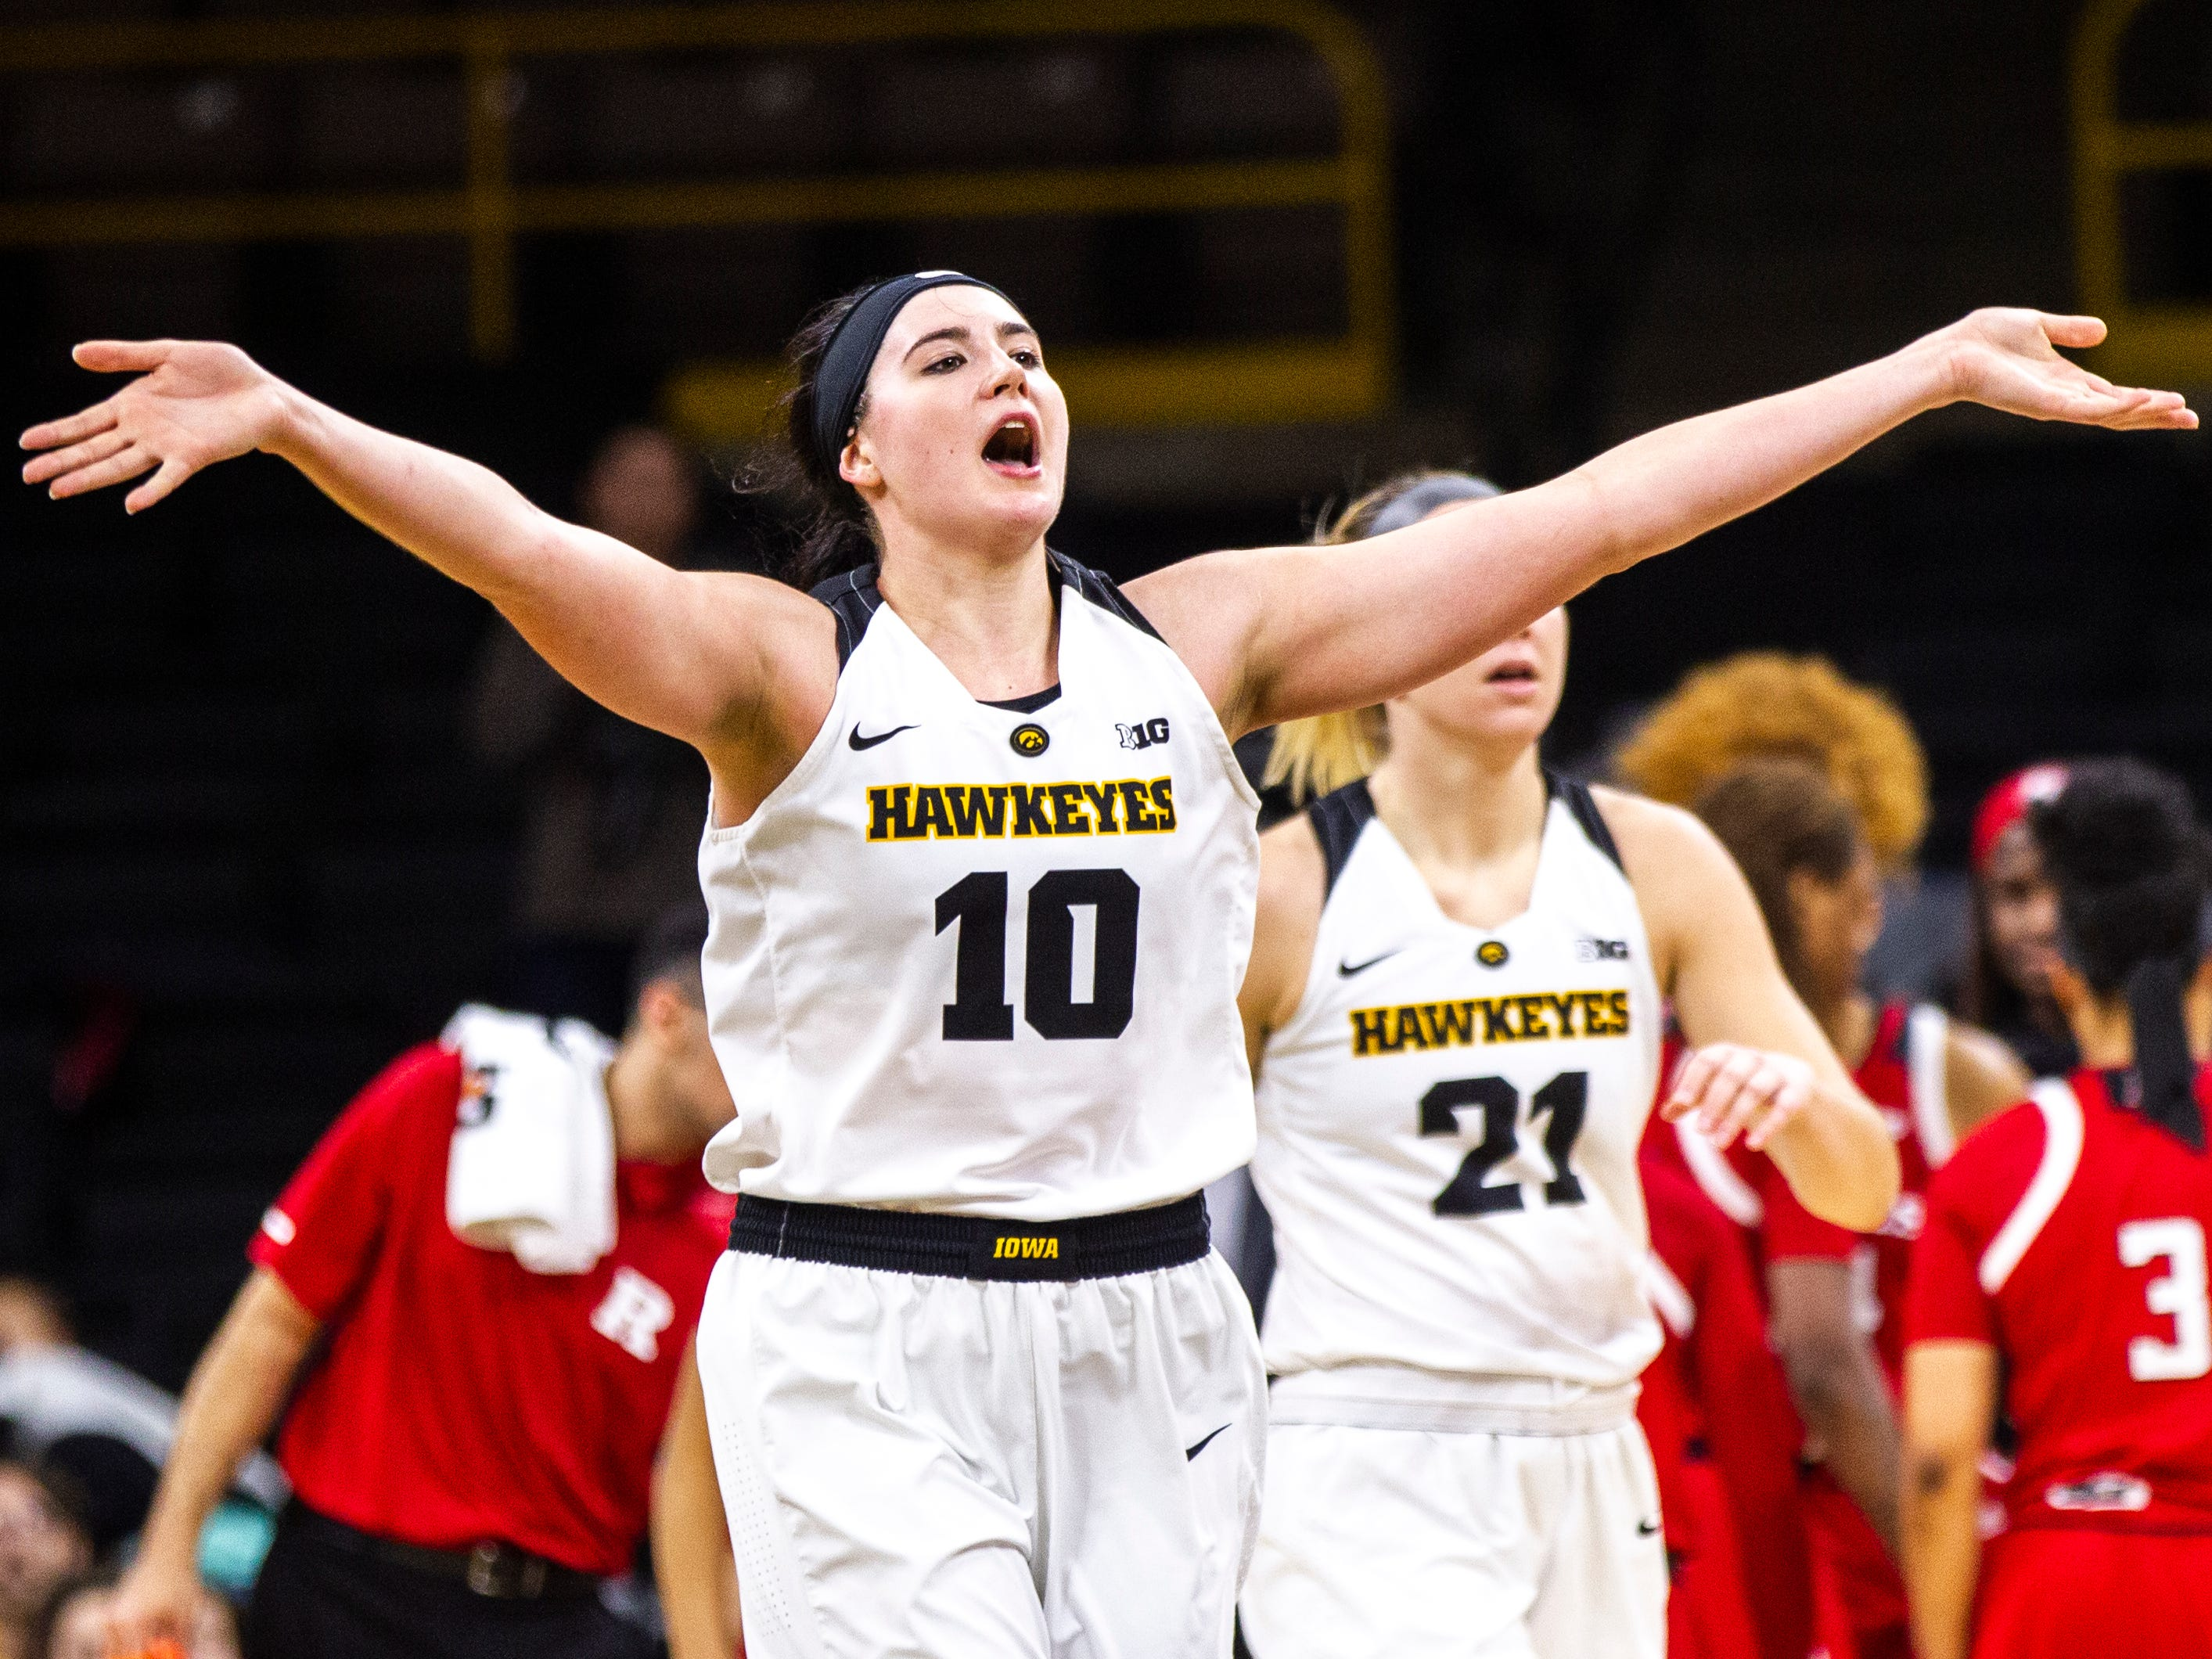 Iowa forward Megan Gustafson (10) pumps up the crowd heading into a timeout during a NCAA Big Ten Conference women's basketball game on Wednesday, Jan. 23, 2019, at Carver-Hawkeye Arena in Iowa City, Iowa.